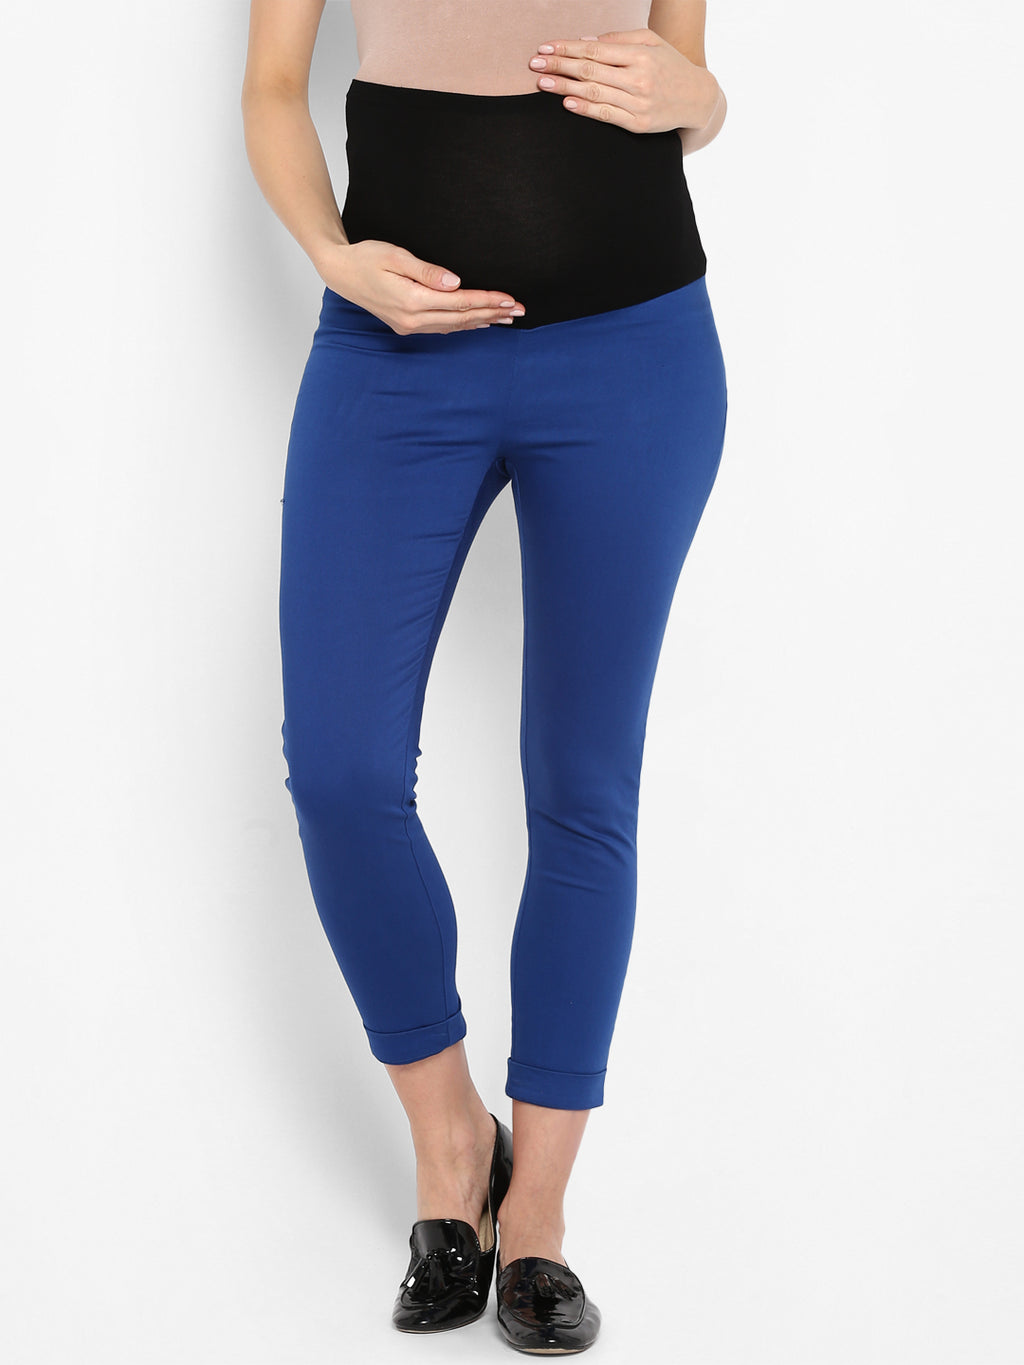 Momsoon Indigo Jeggings - momsoon maternity fashion wear